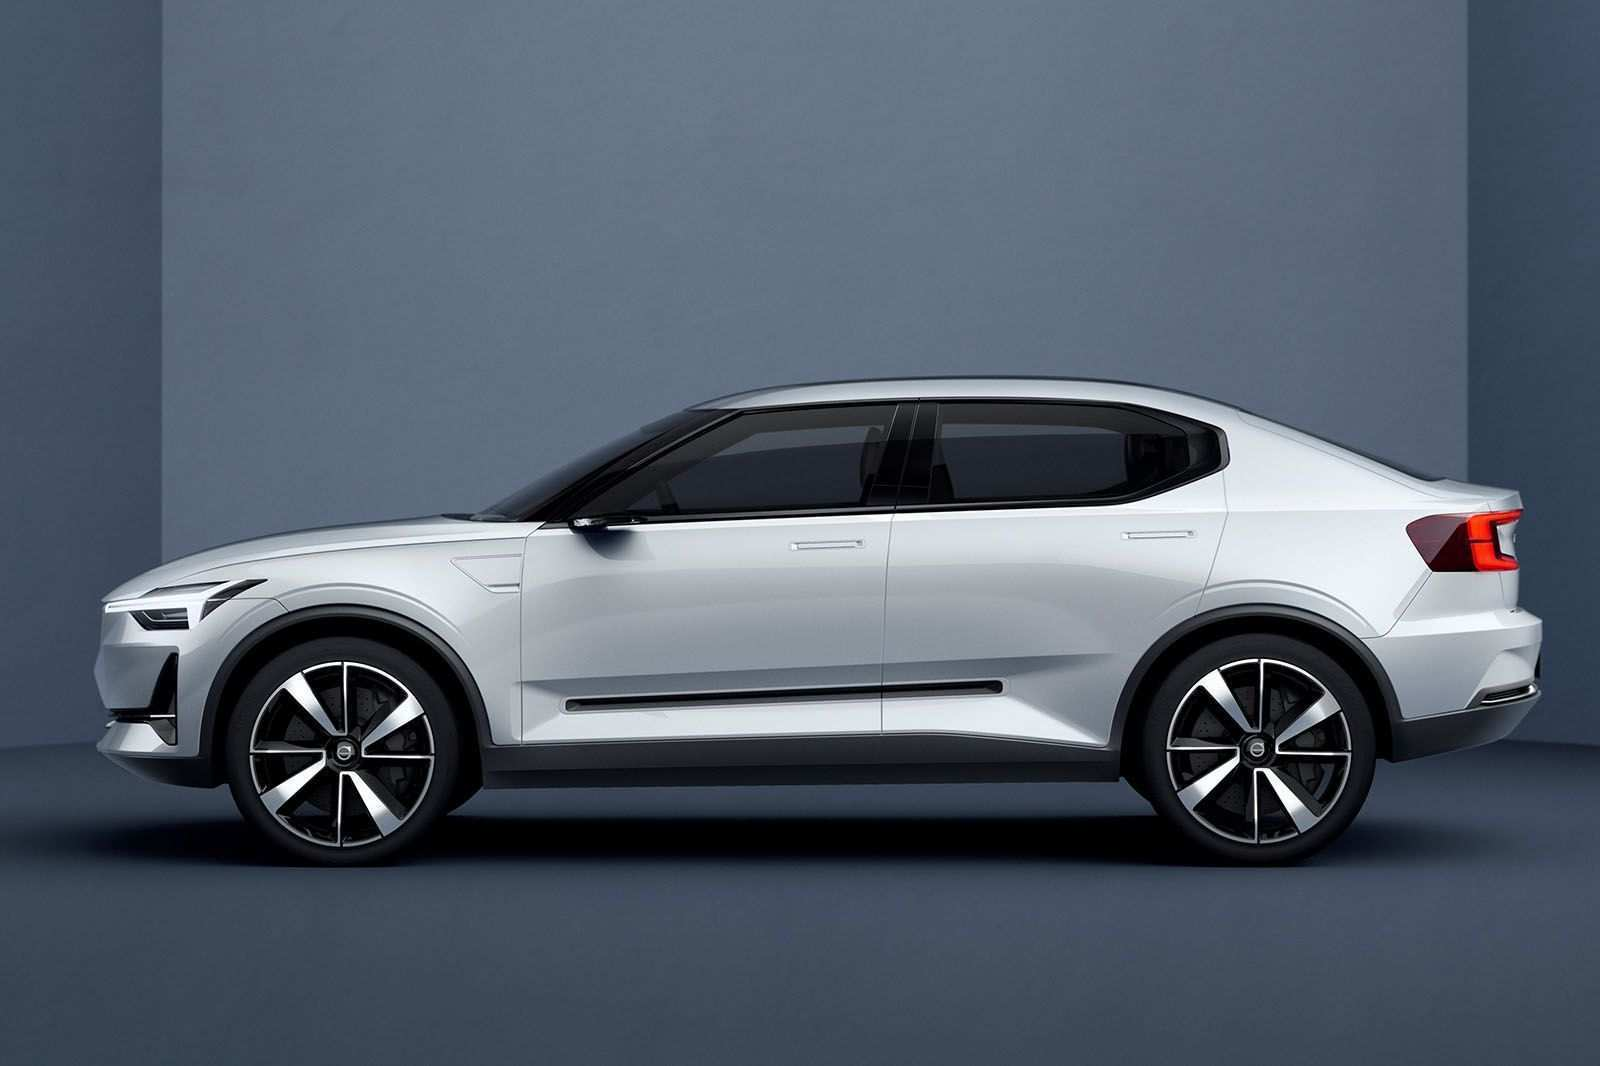 44 Gallery of New Volvo Models 2019 Photos for New Volvo Models 2019